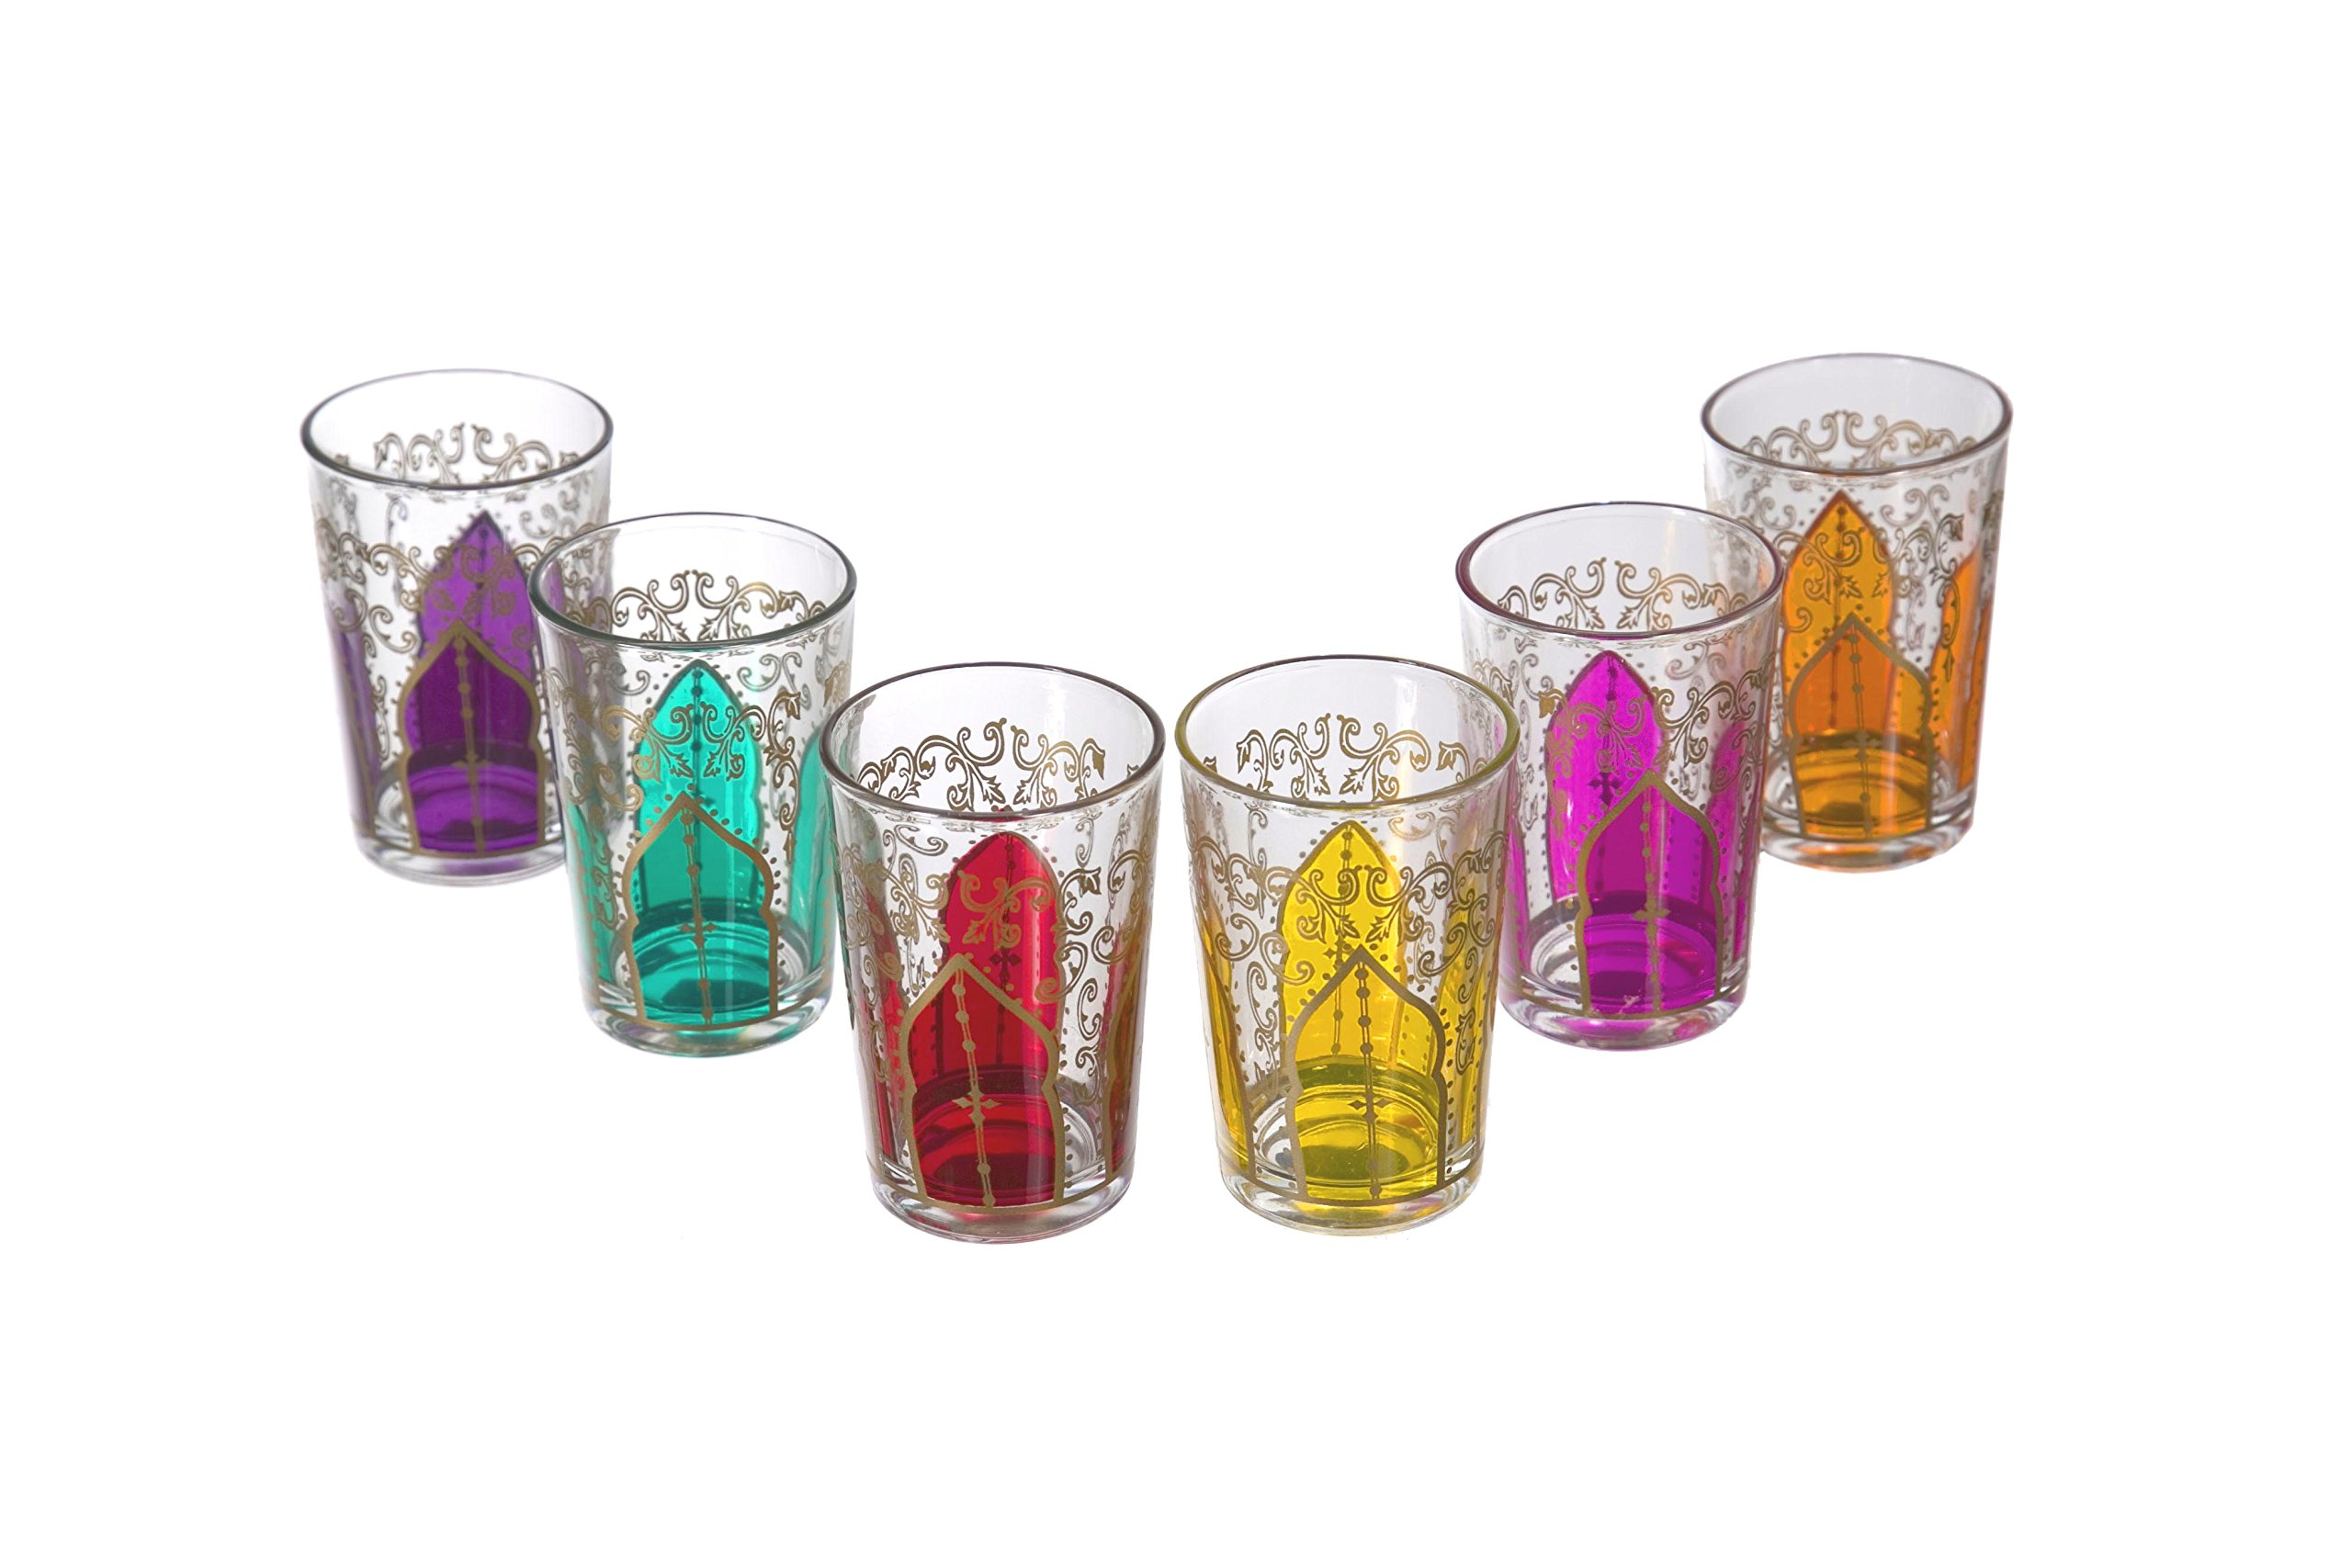 Casablanca Market Moroccan Tamansour Mix Tea Glasses, Multicolored, Set of 6